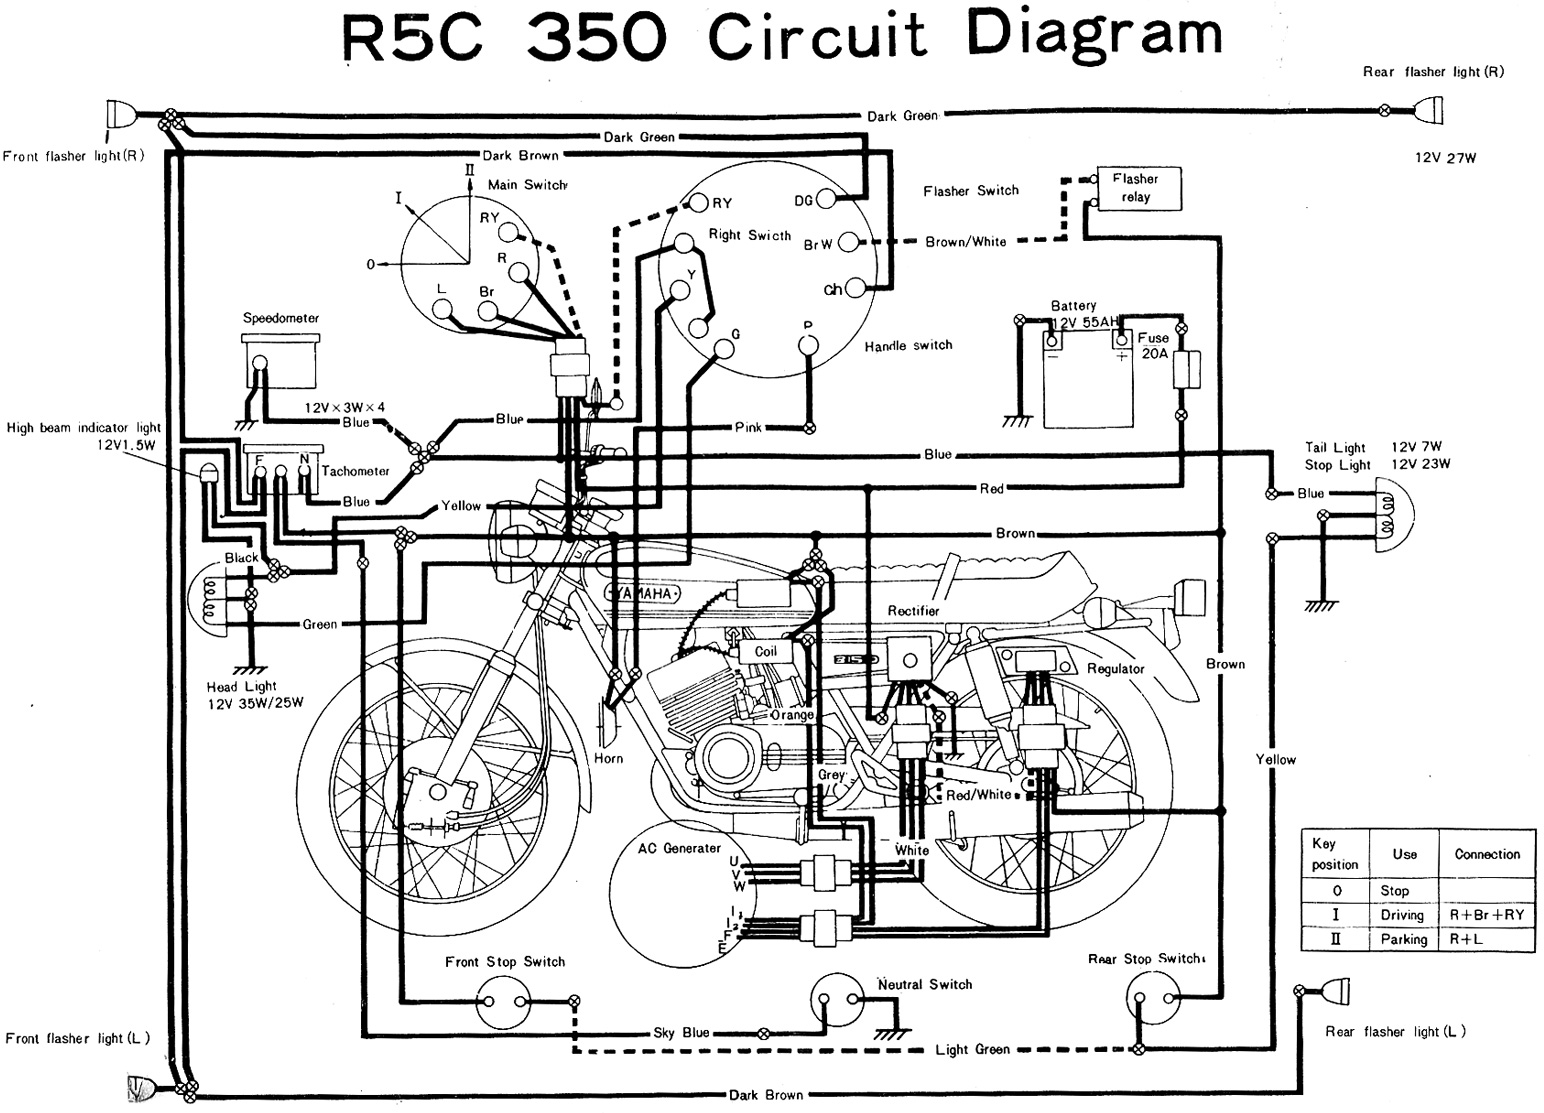 Yamaha Rd350 R5c Wiring Diagram on norton wiring diagram